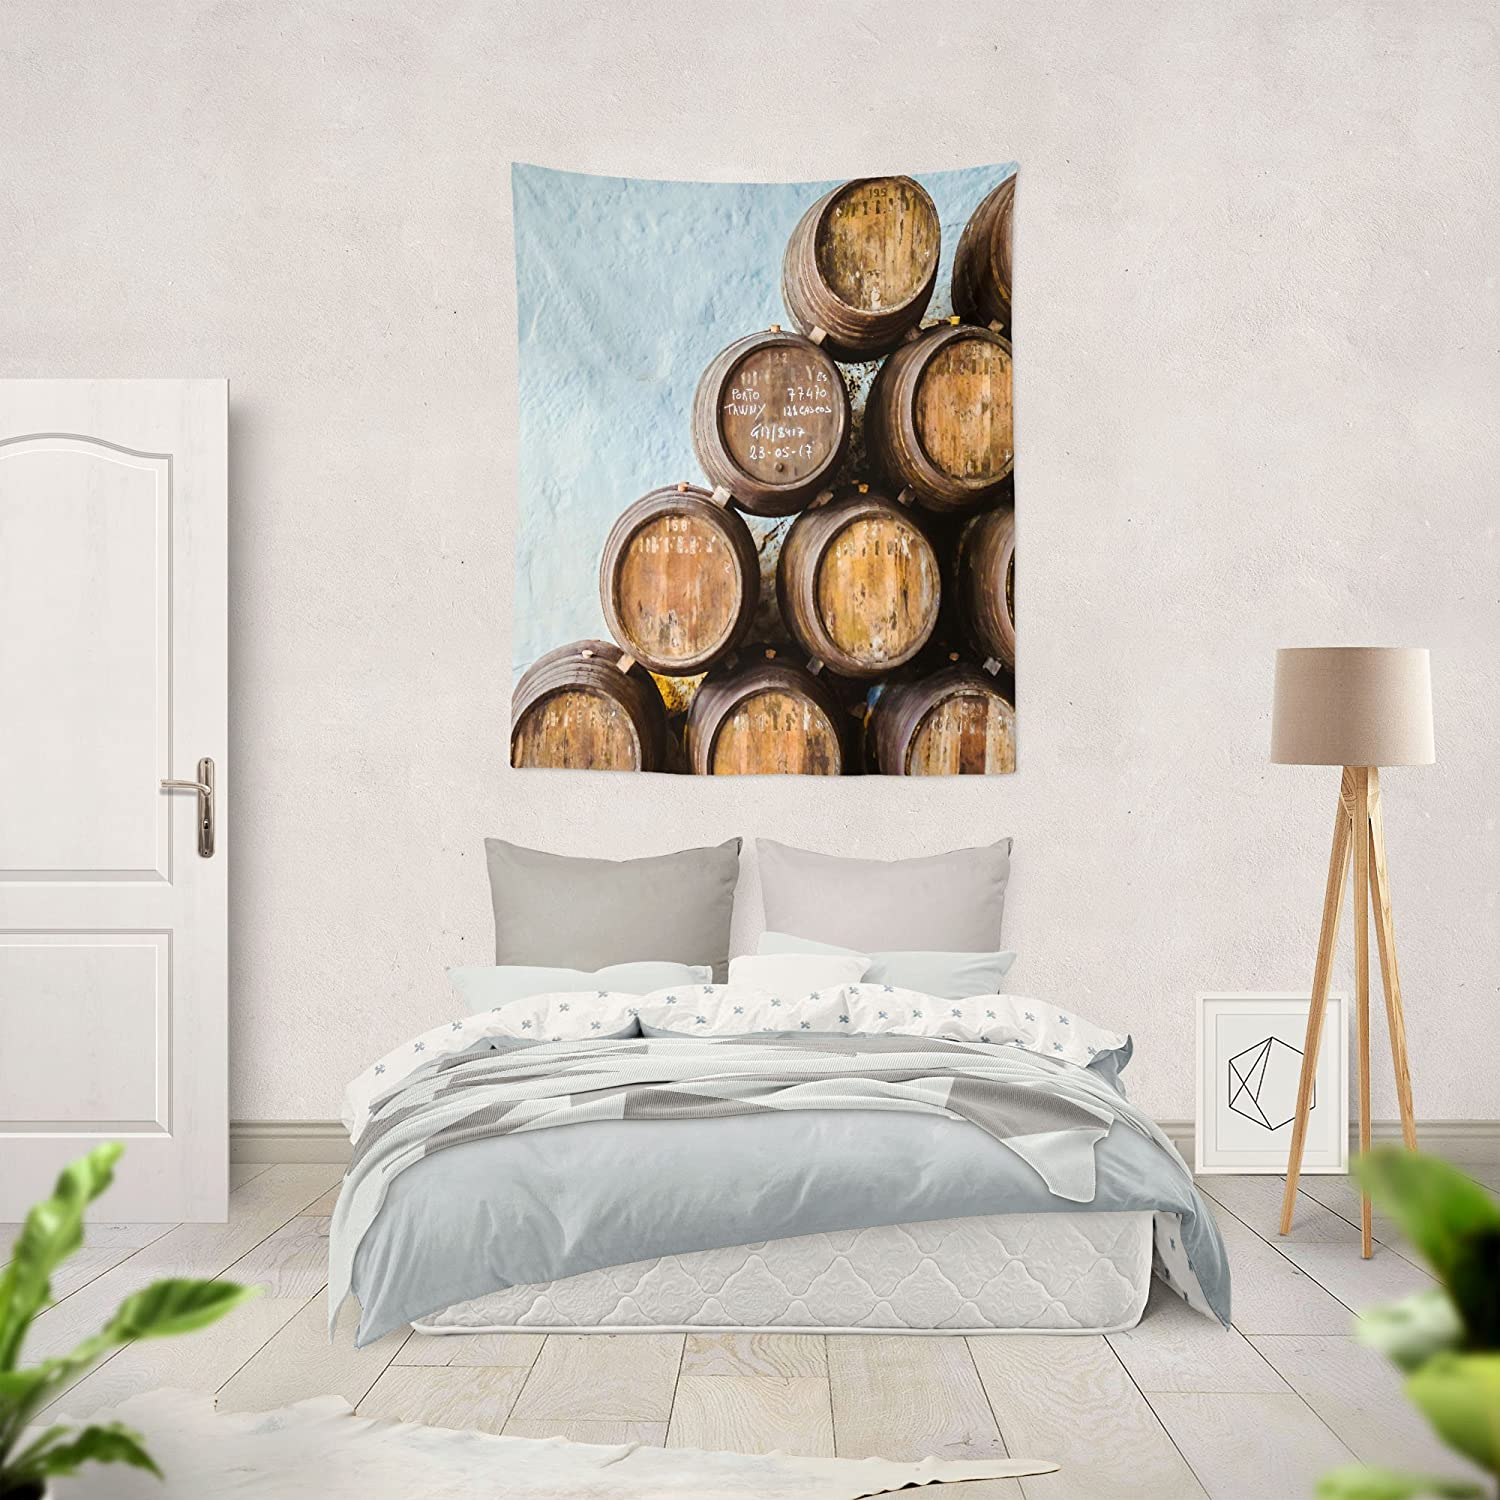 Amazon.com: Westlake Art - Barrel Barrels - Wall Hanging Tapestry - Picture Photography Artwork Home Decor Living Room - 68x80 Inch (A6475): Home & Kitchen